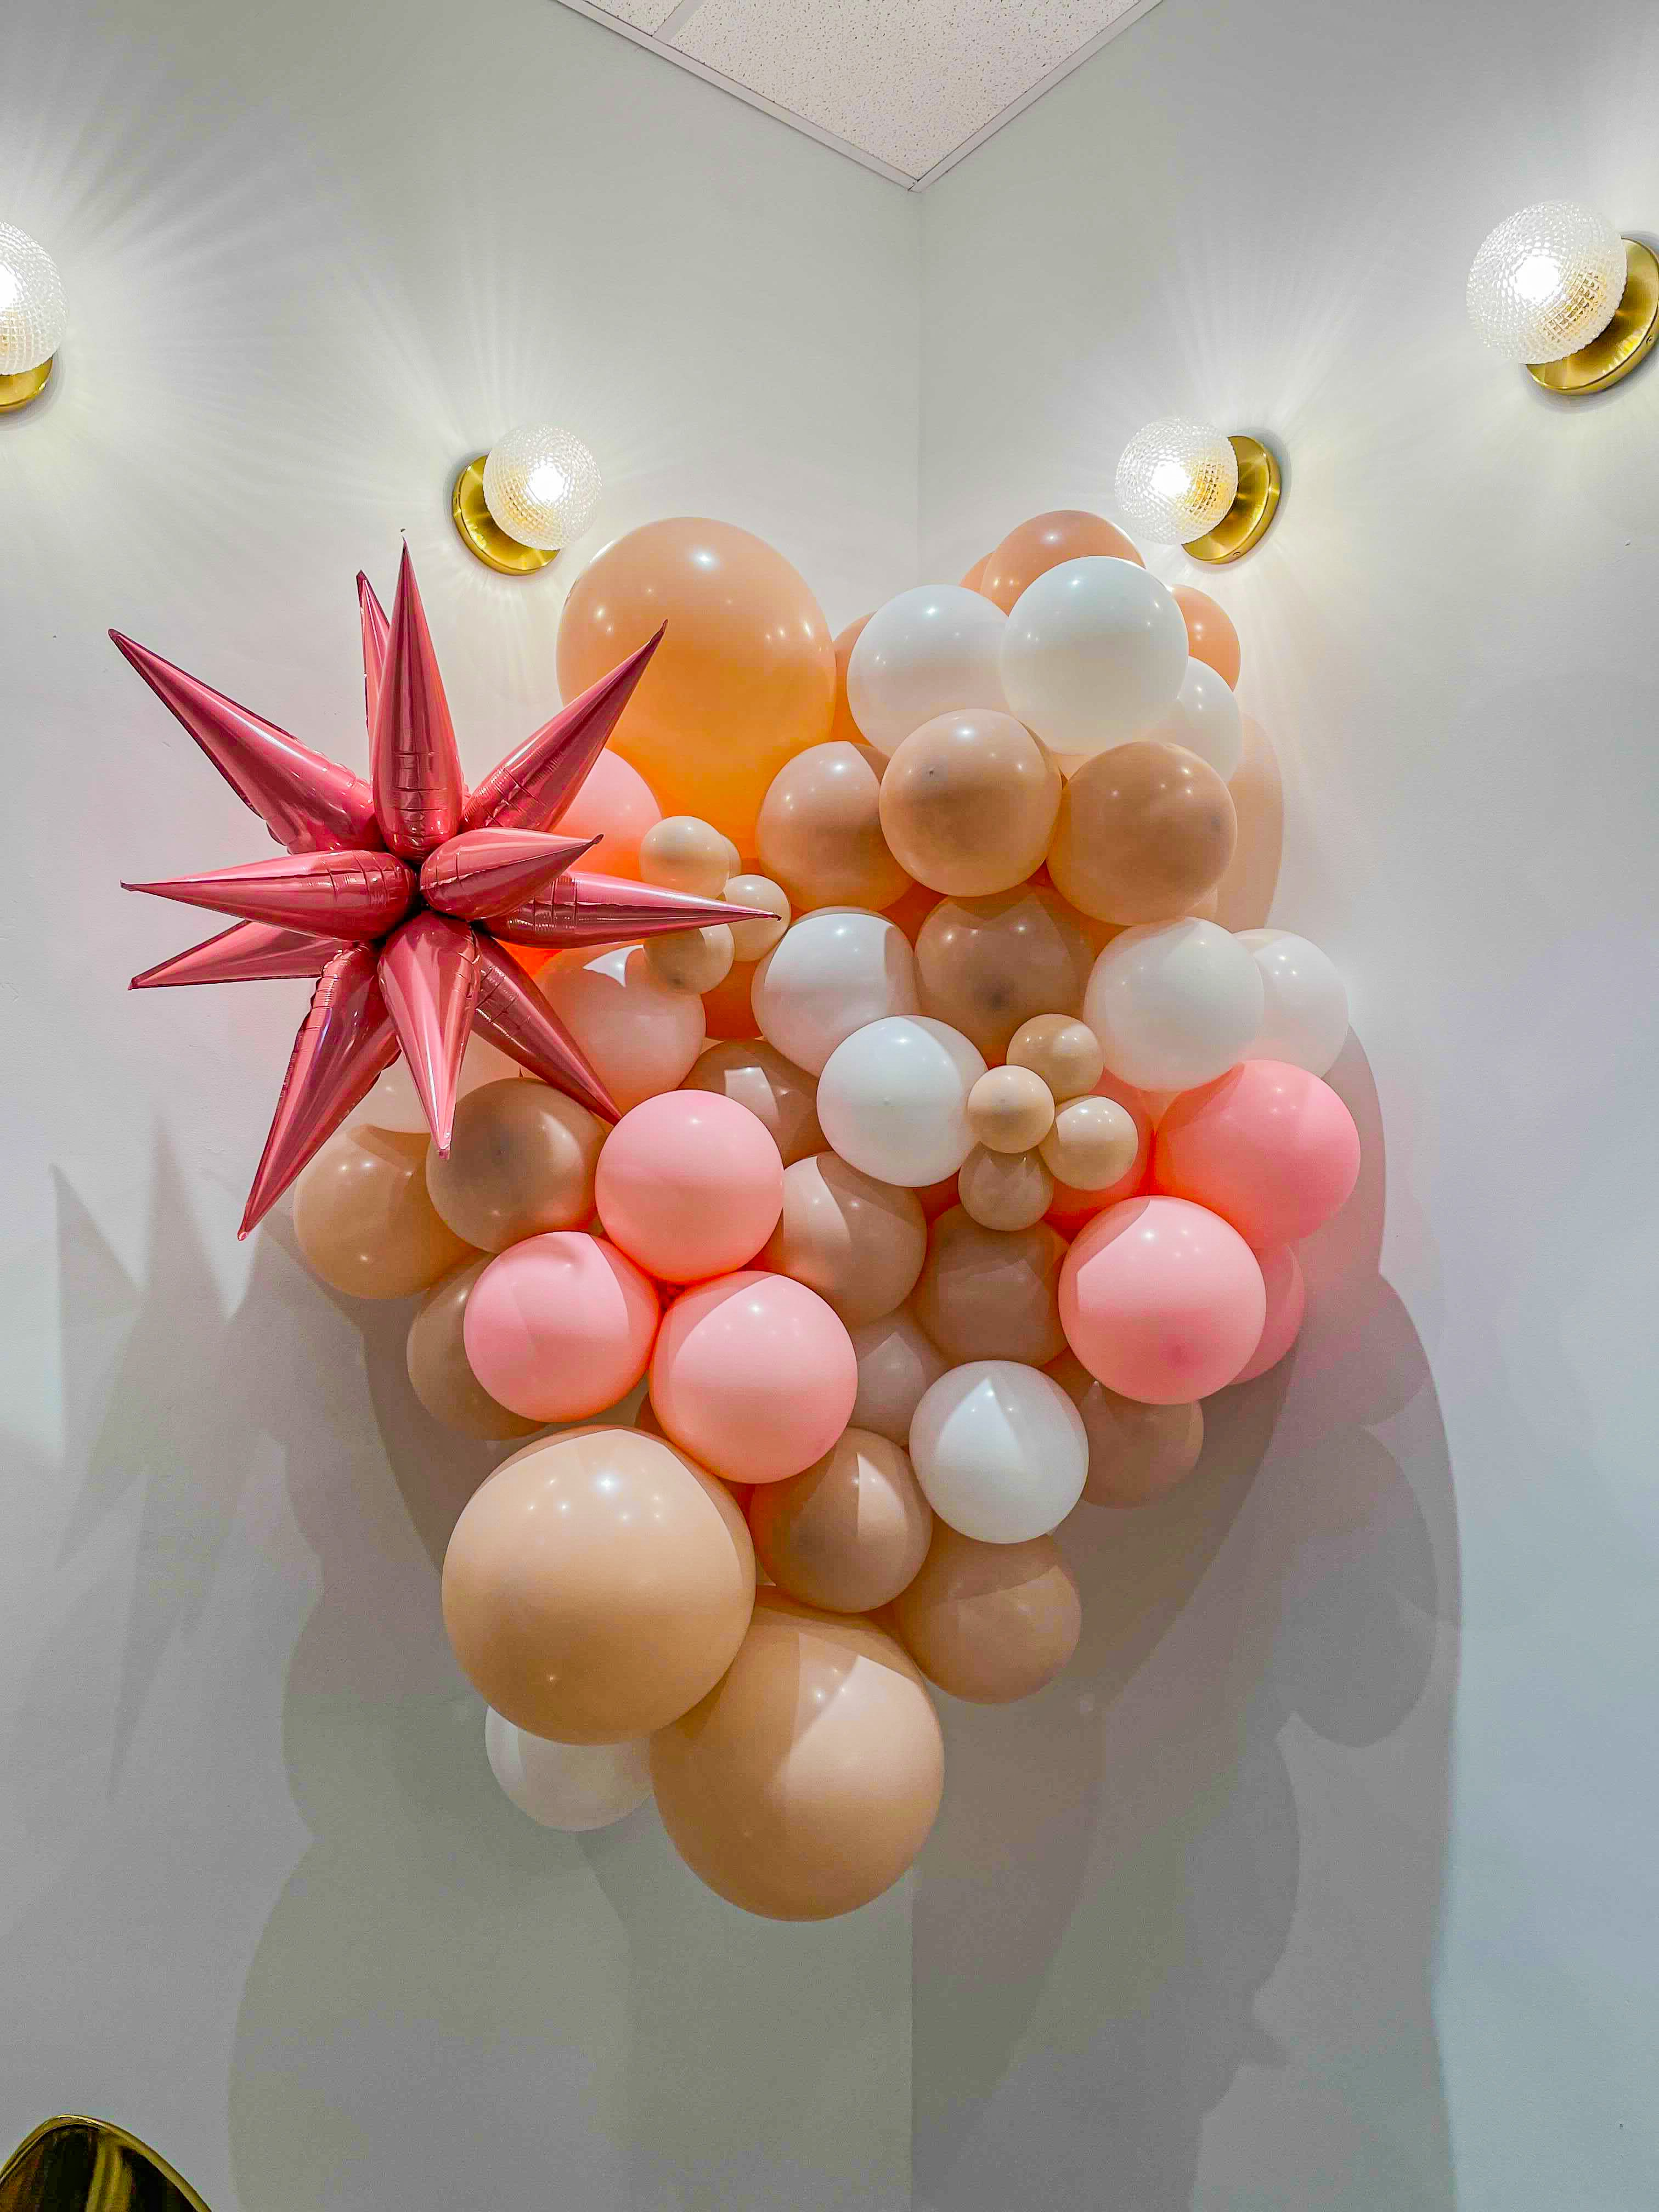 A peach, pink, and white balloon structure with a pink starburst balloon.